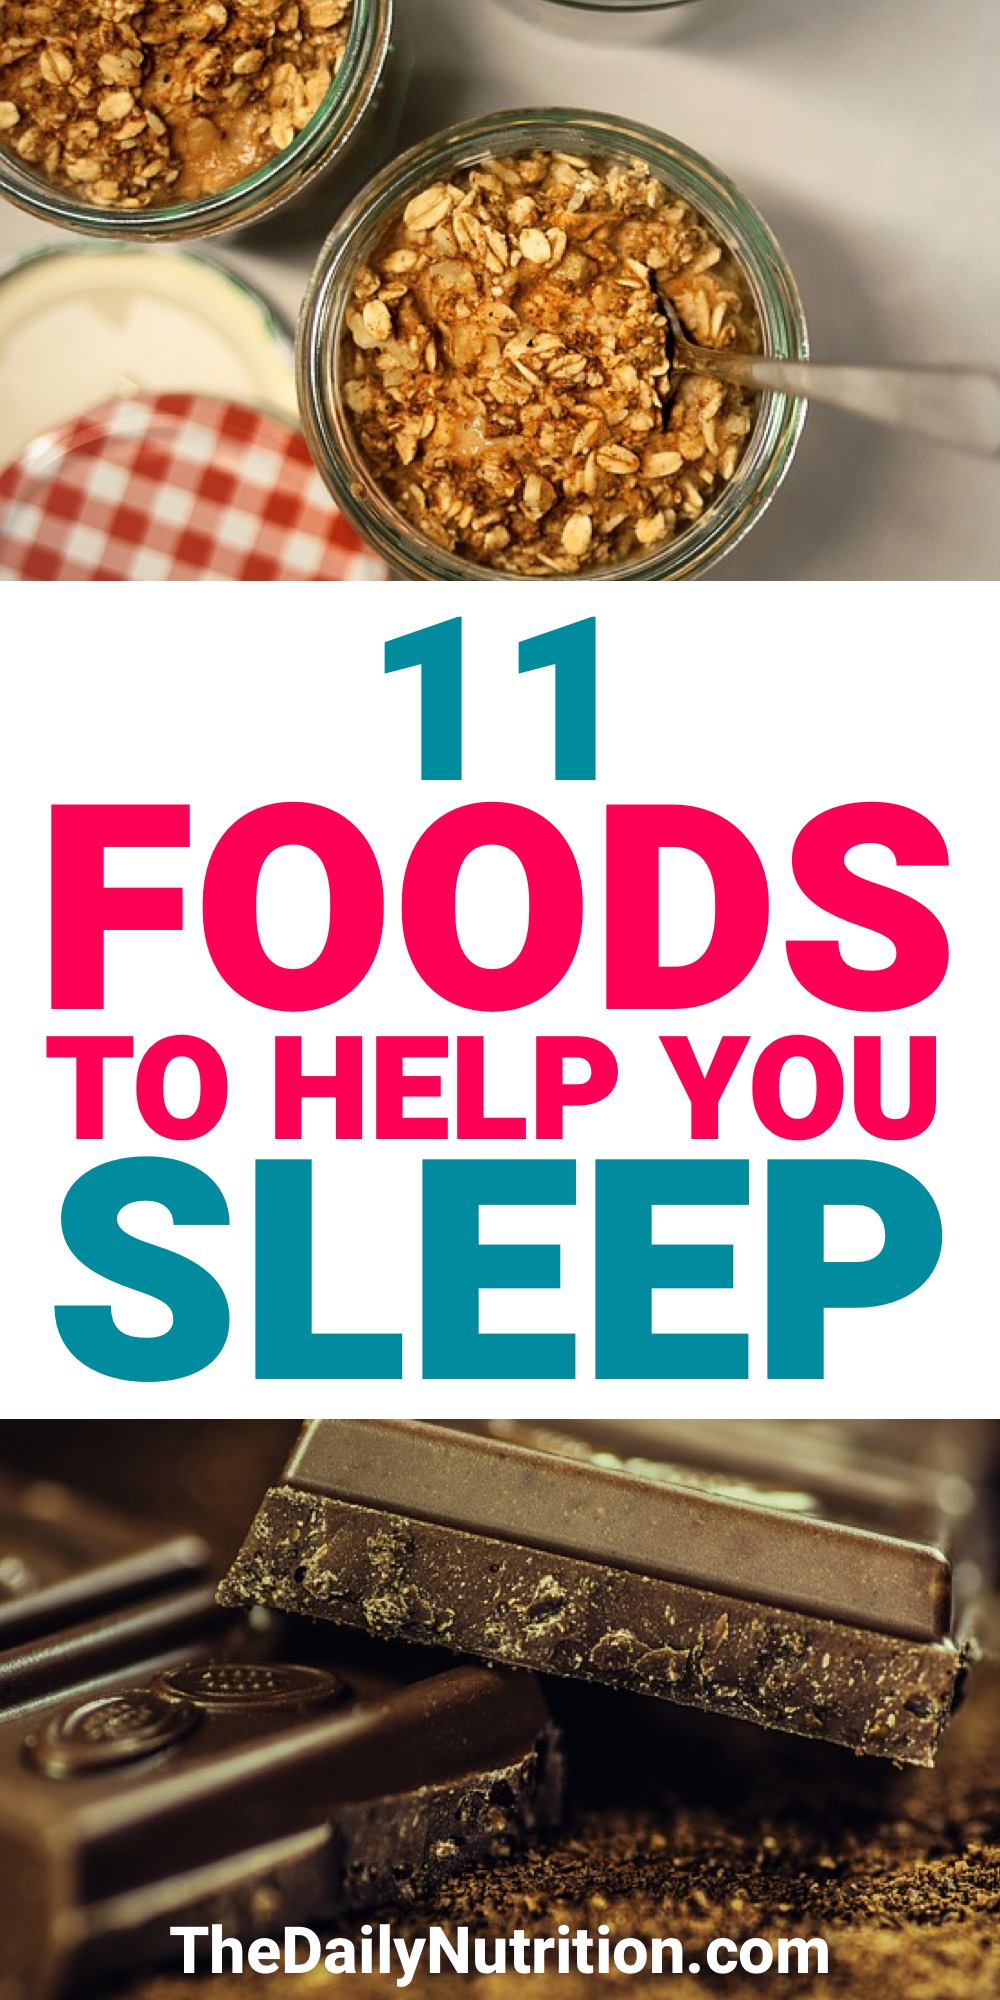 Sleep is just as important as getting the right nutrition. Combine the two and you're sitting pretty. Here are 11 foods that will help you go to sleep.